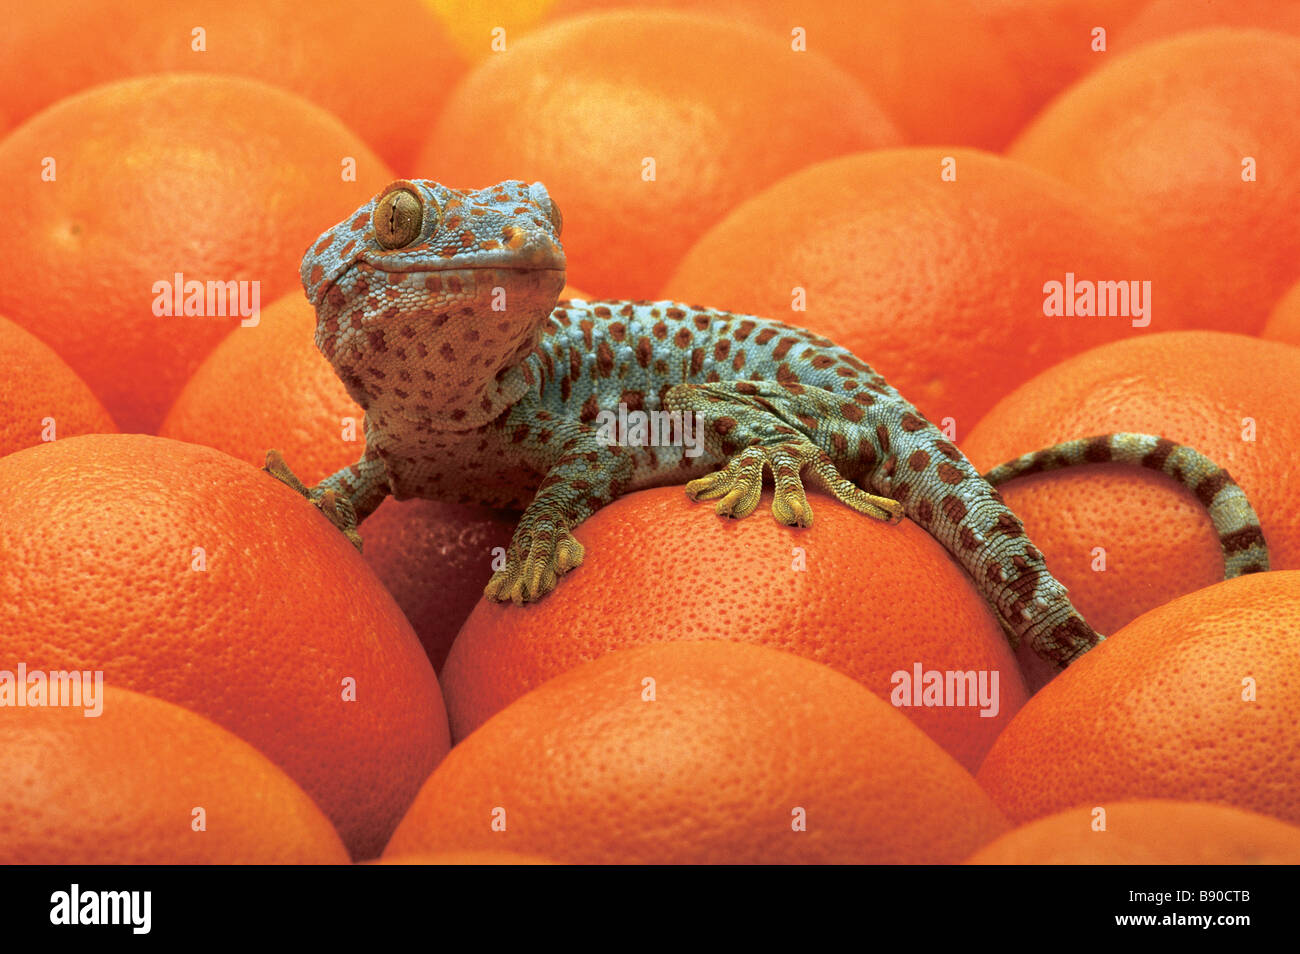 FL1179, Kitchin/Hurst; Spotted Lizard Oranges - Stock Image